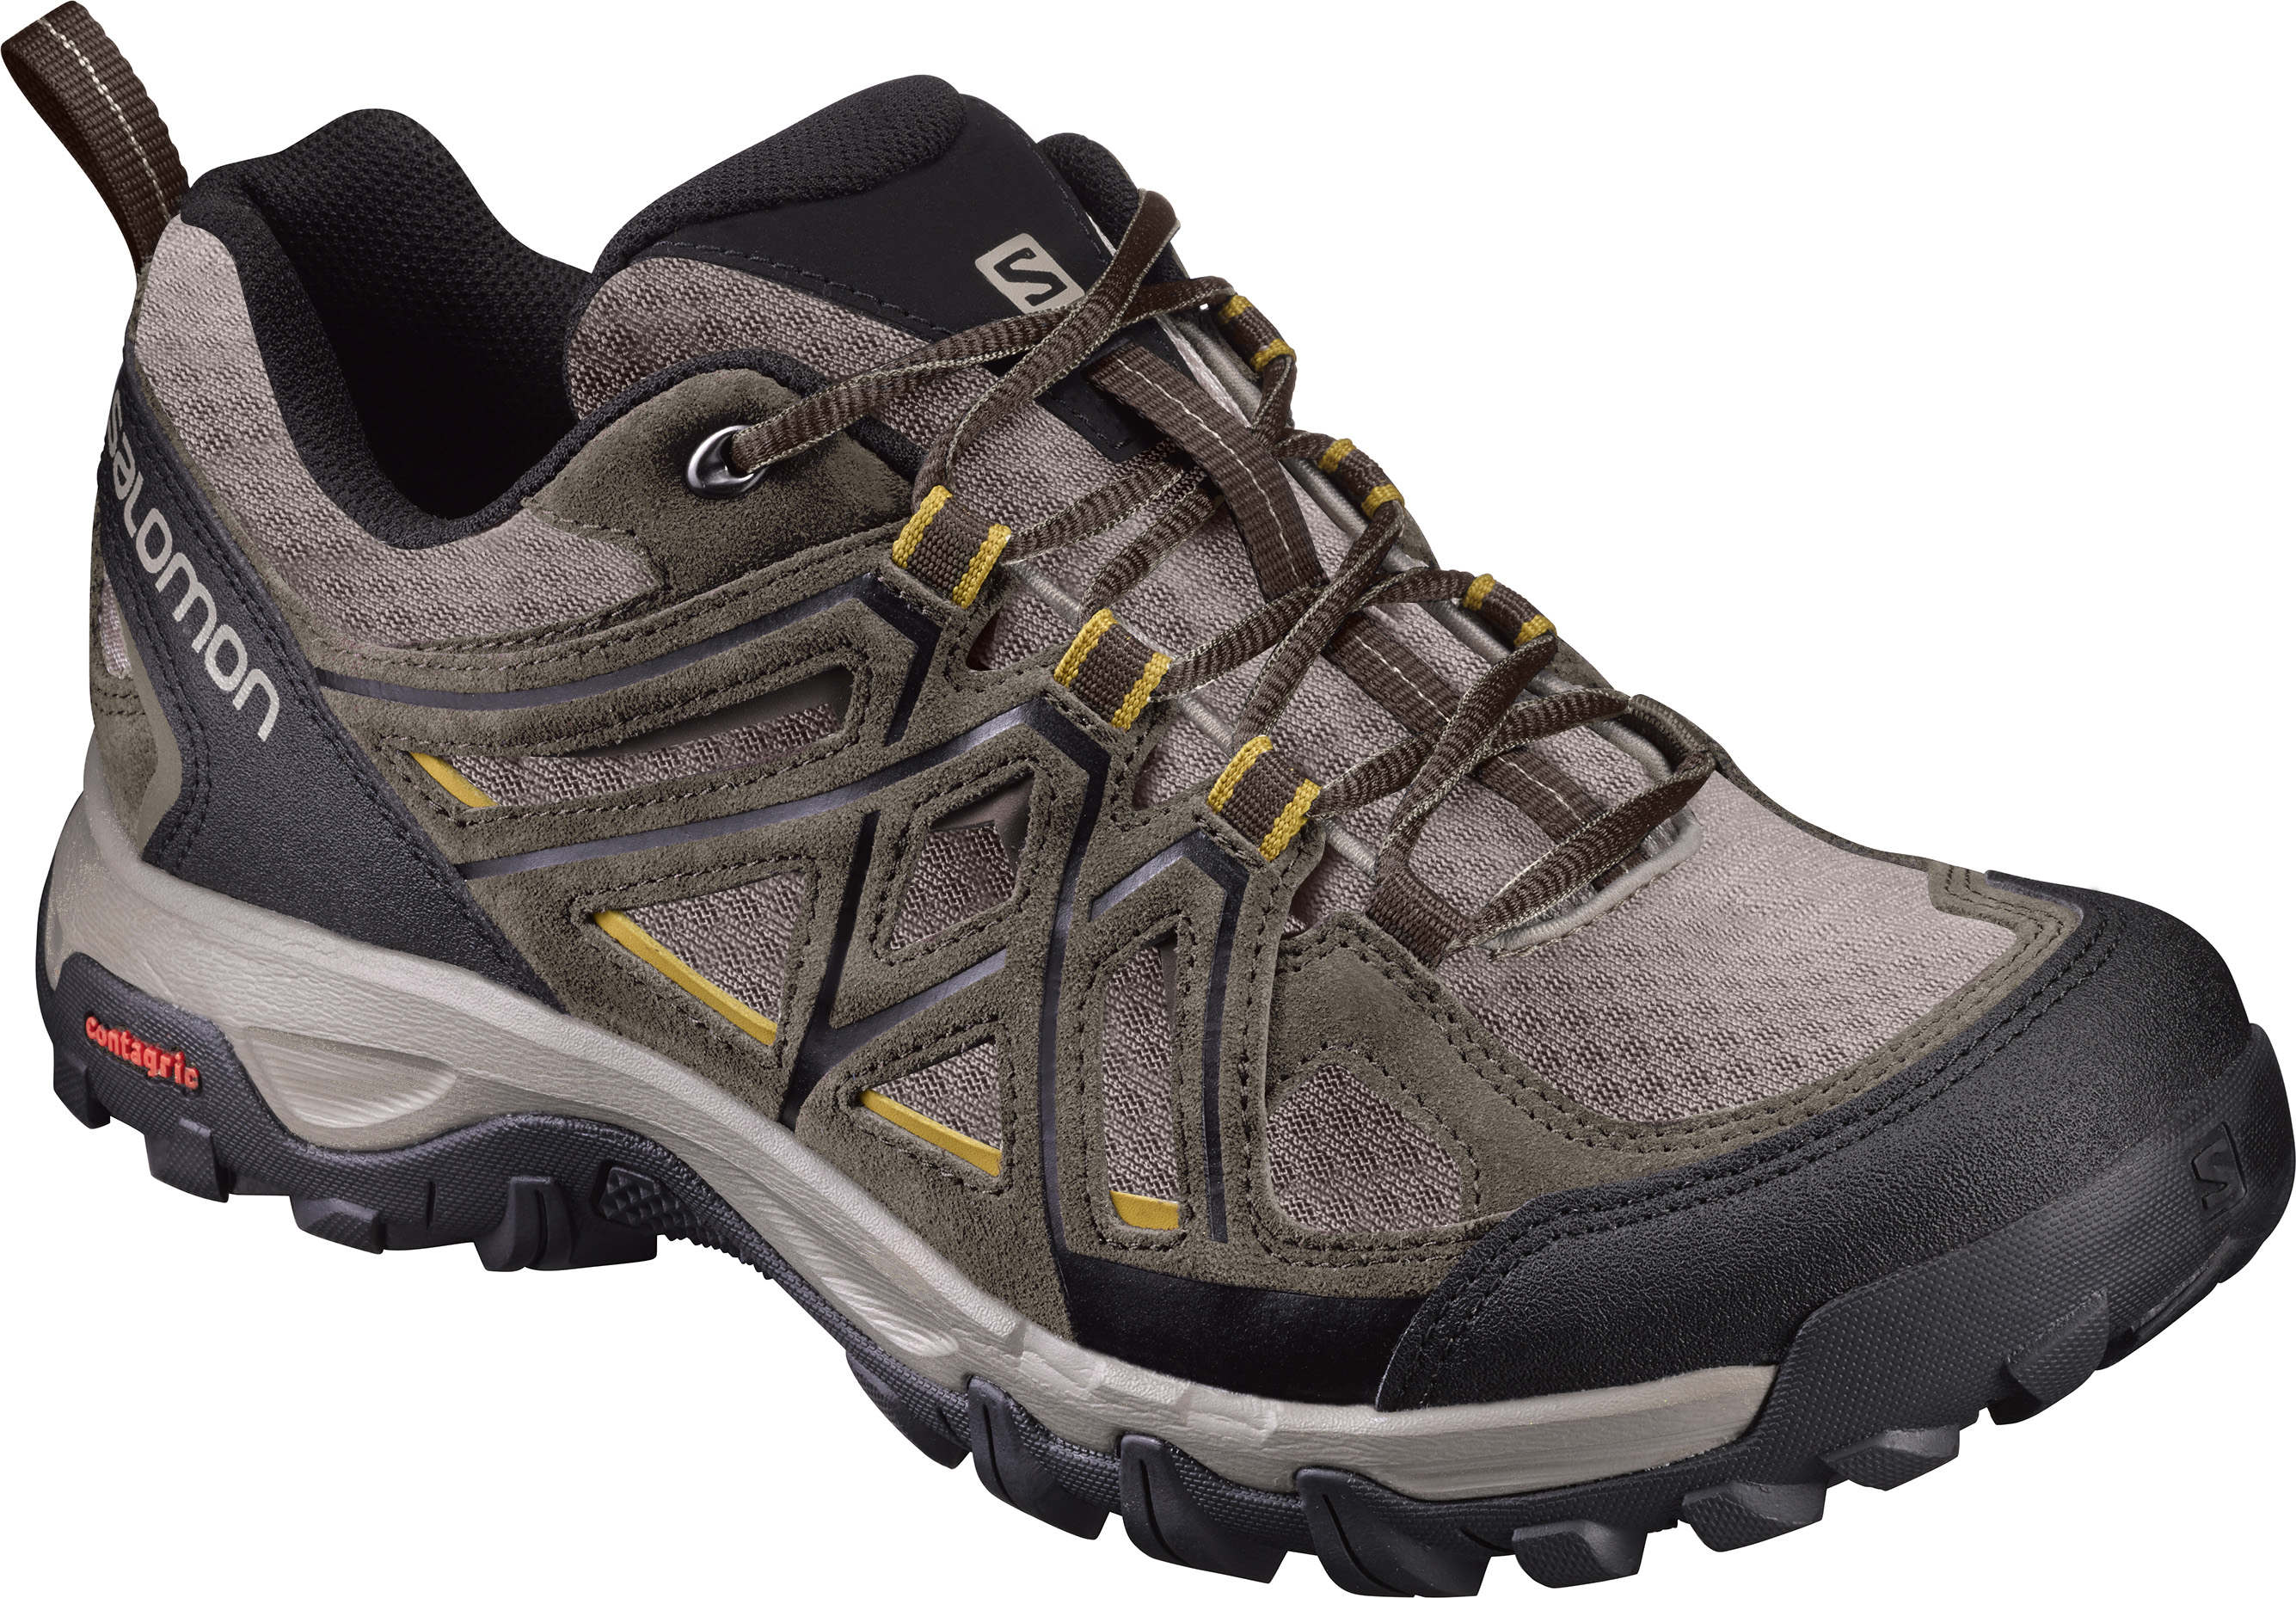 47b63361167e Salomon Evasion 2 Aero Hiking Shoe - Men s